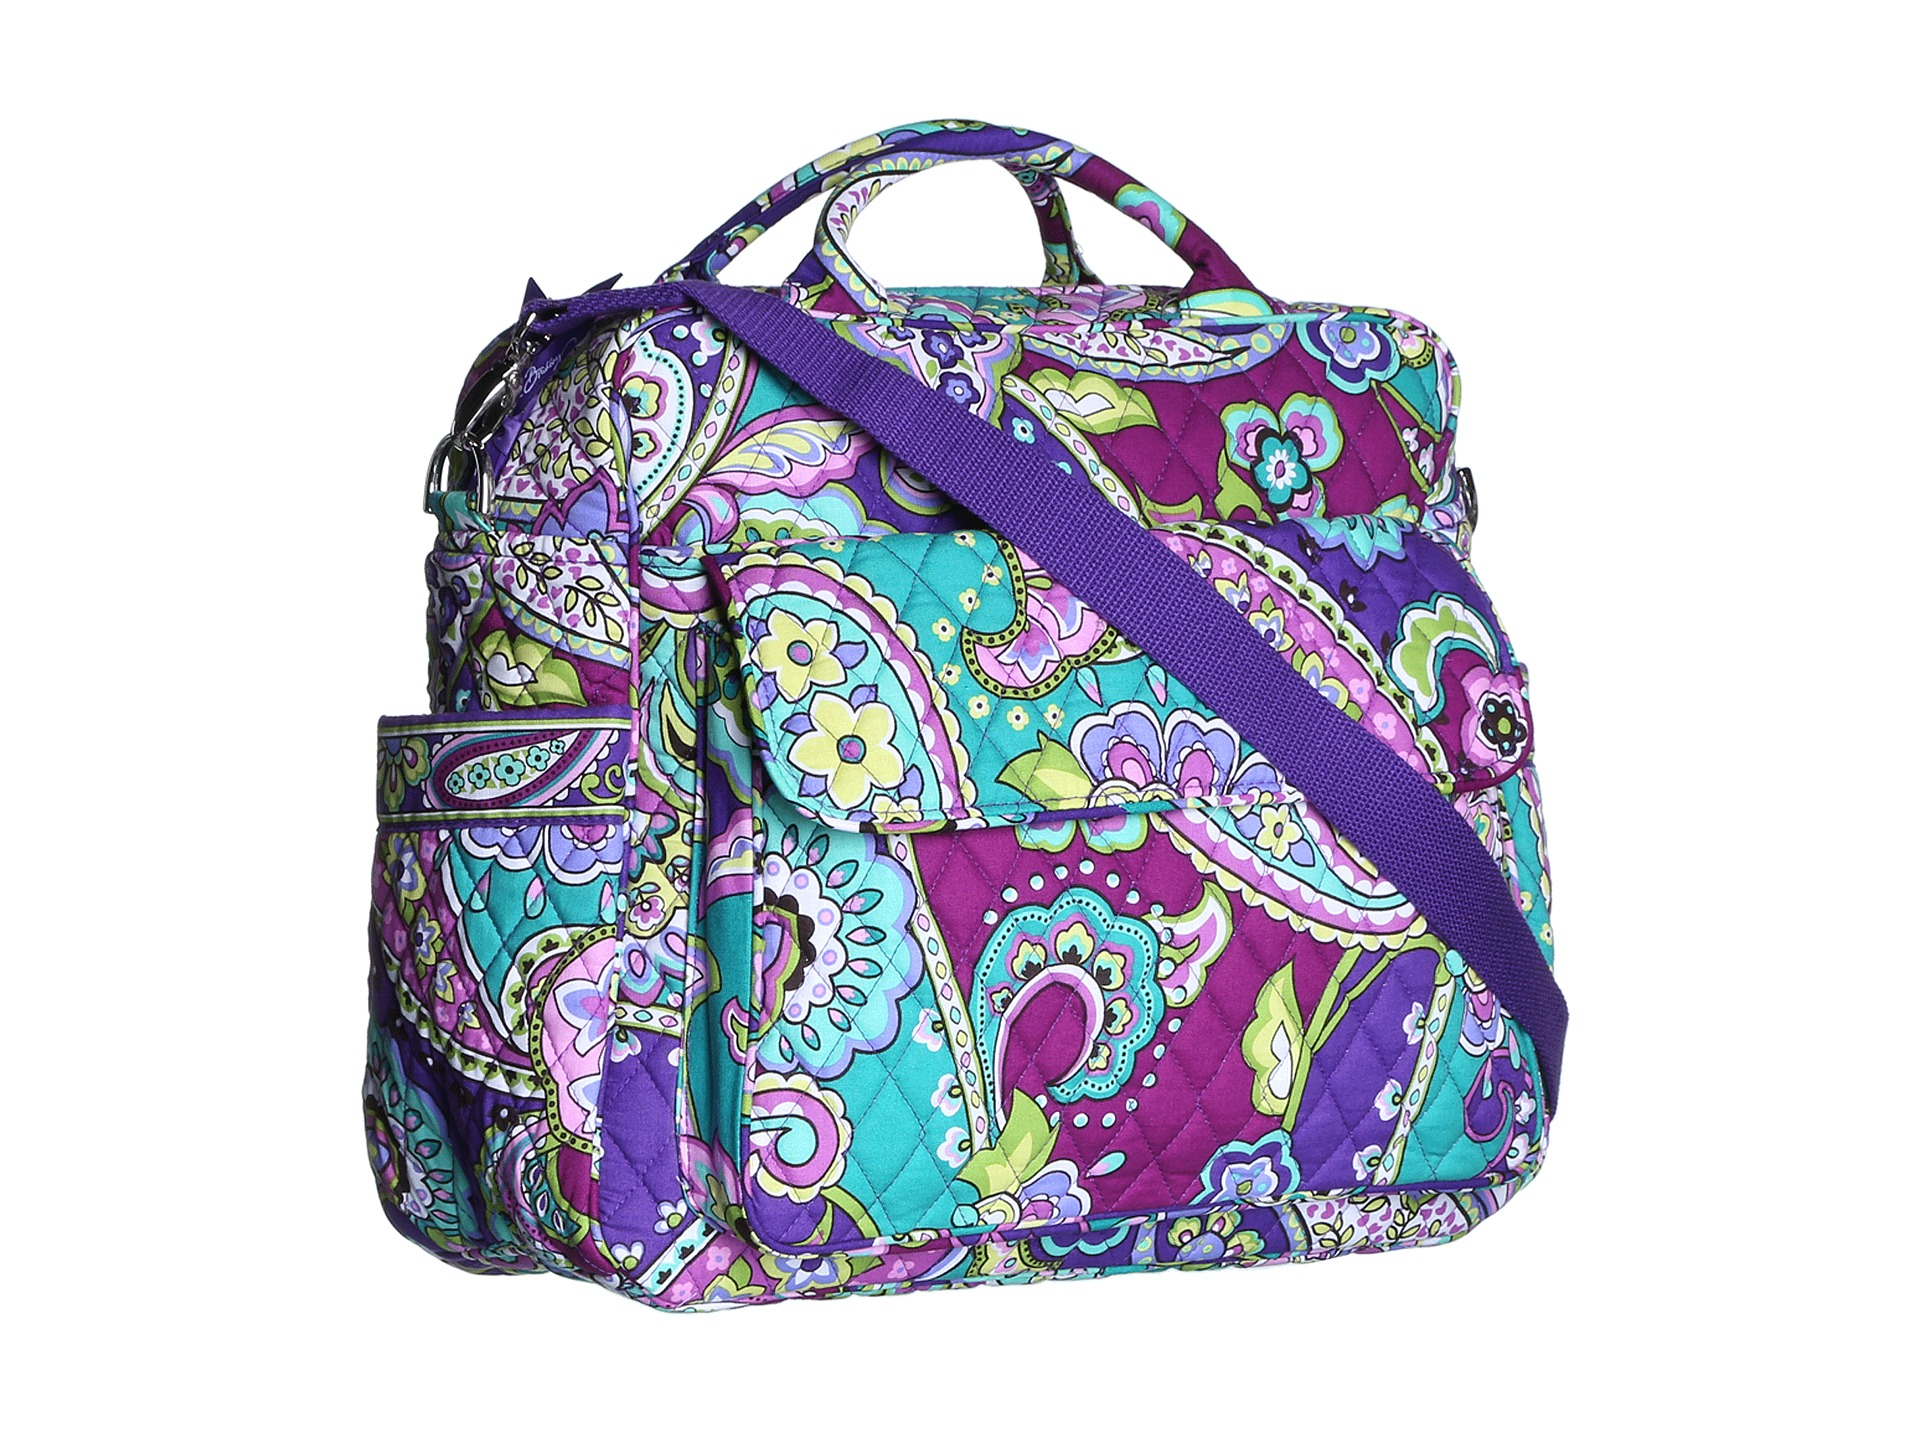 vera bradley convertible baby bag heather shipped free at zappos. Black Bedroom Furniture Sets. Home Design Ideas